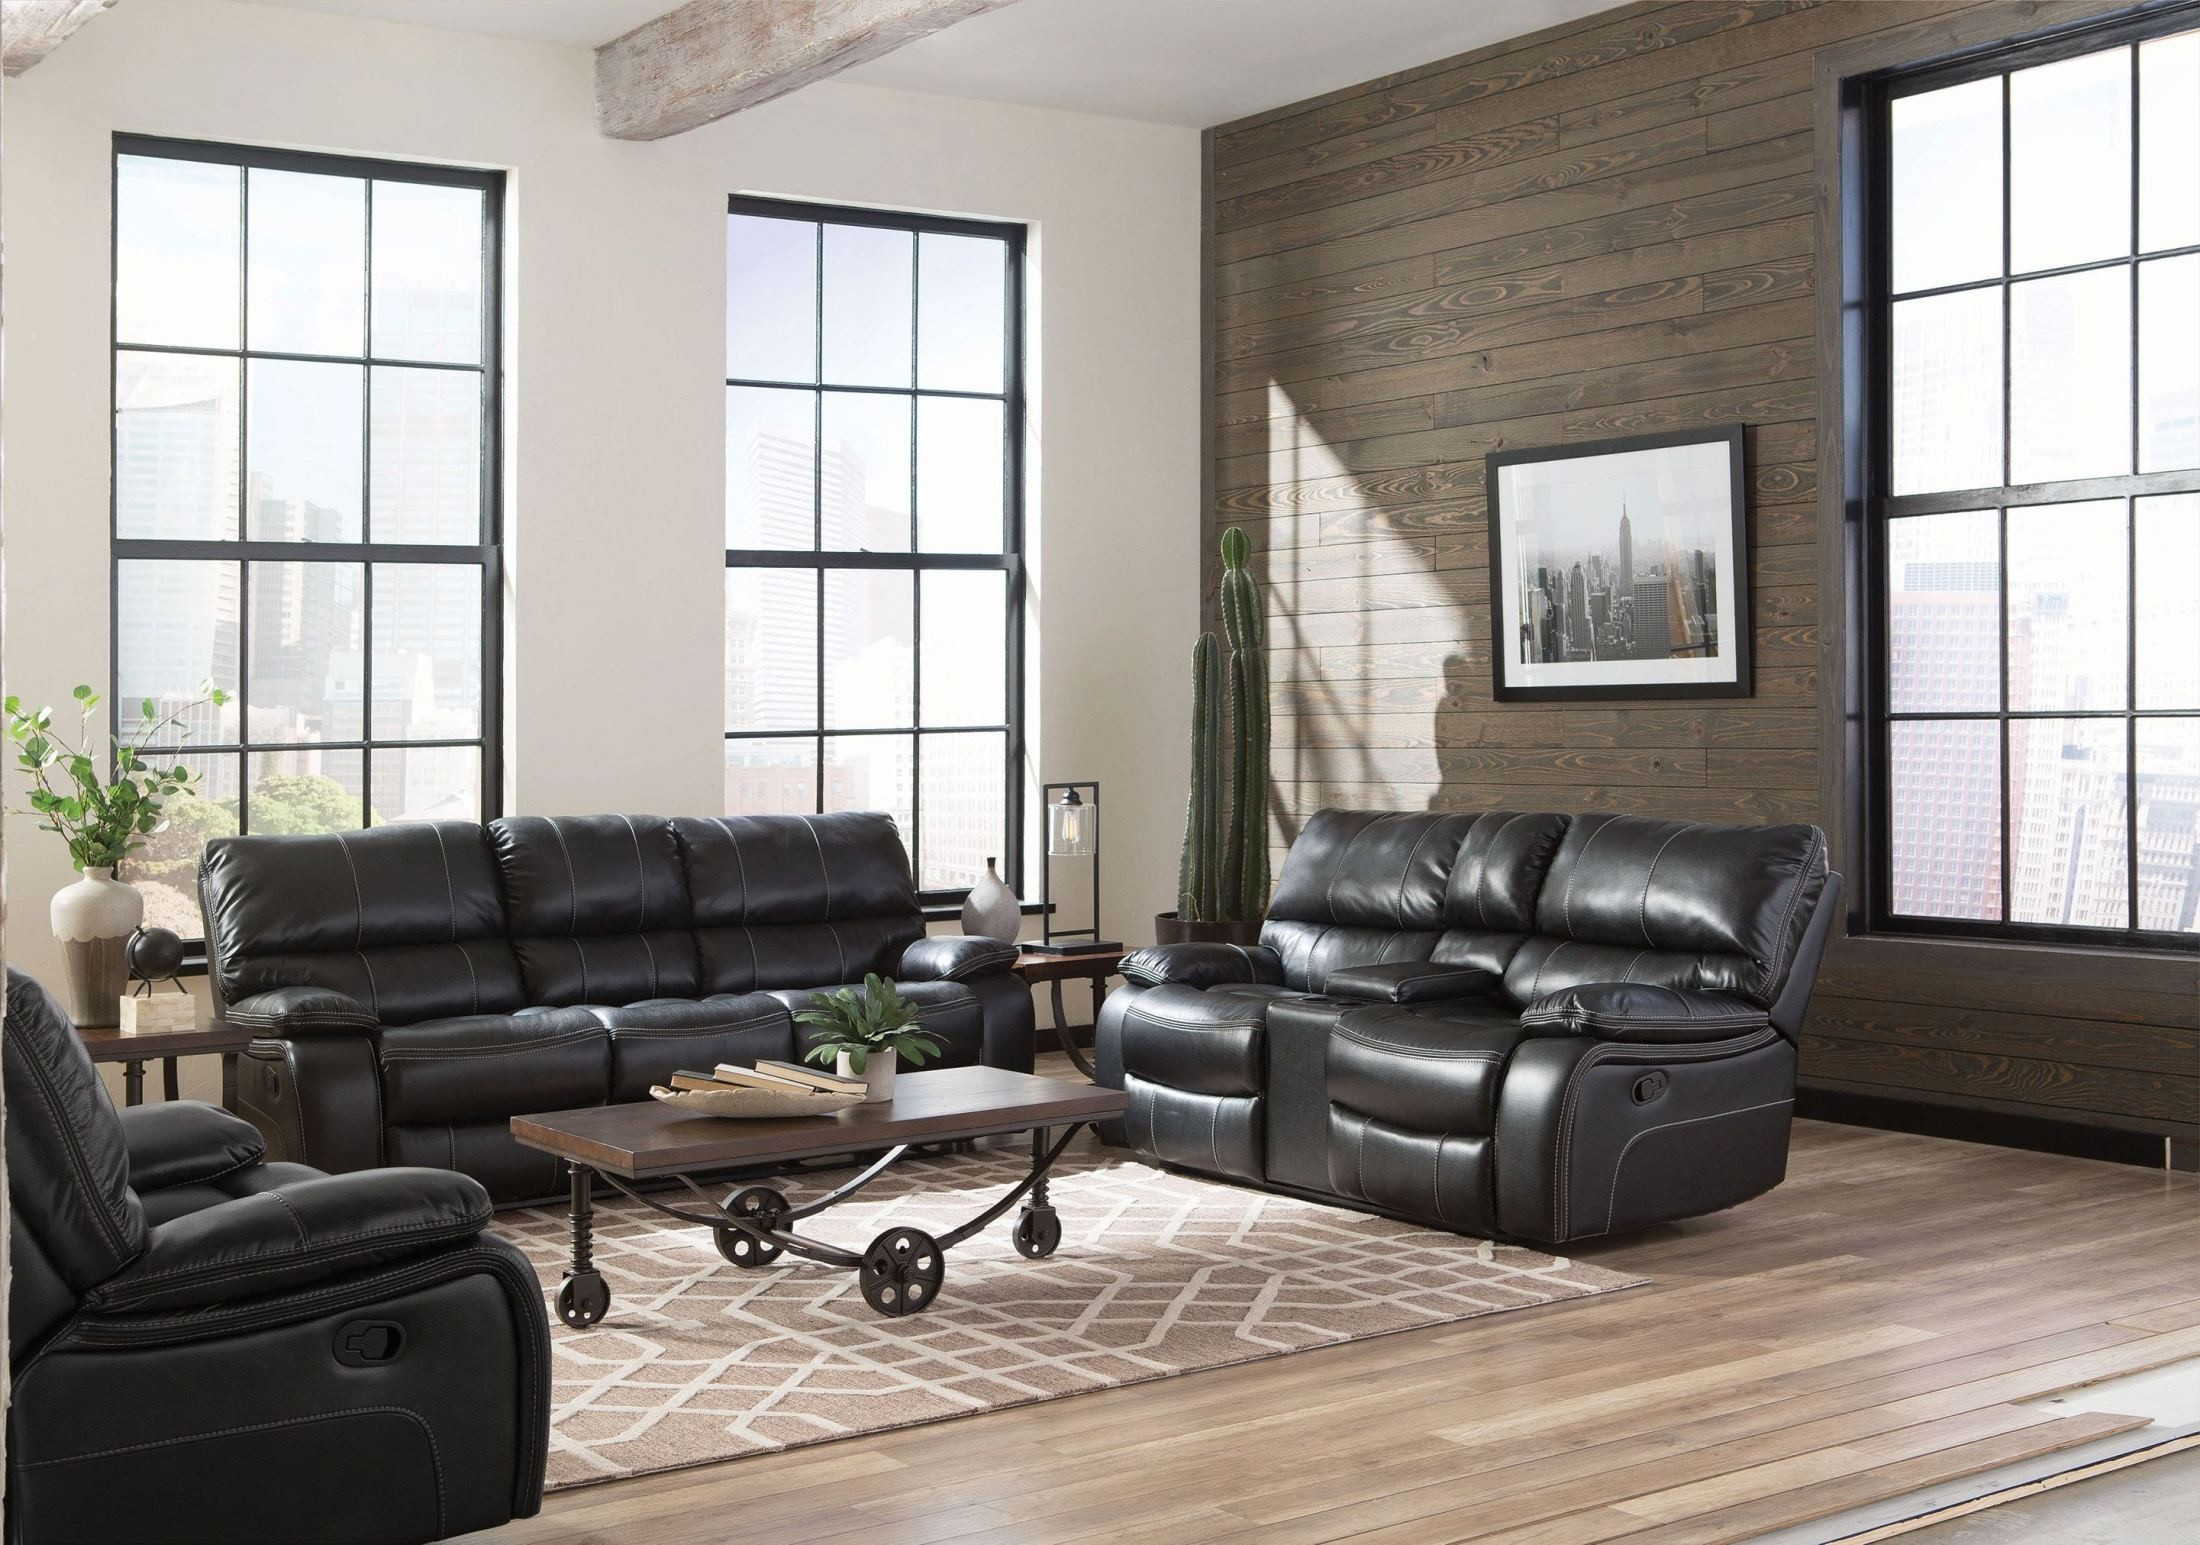 Willemse Black Reclining Living Room Set from Coaster